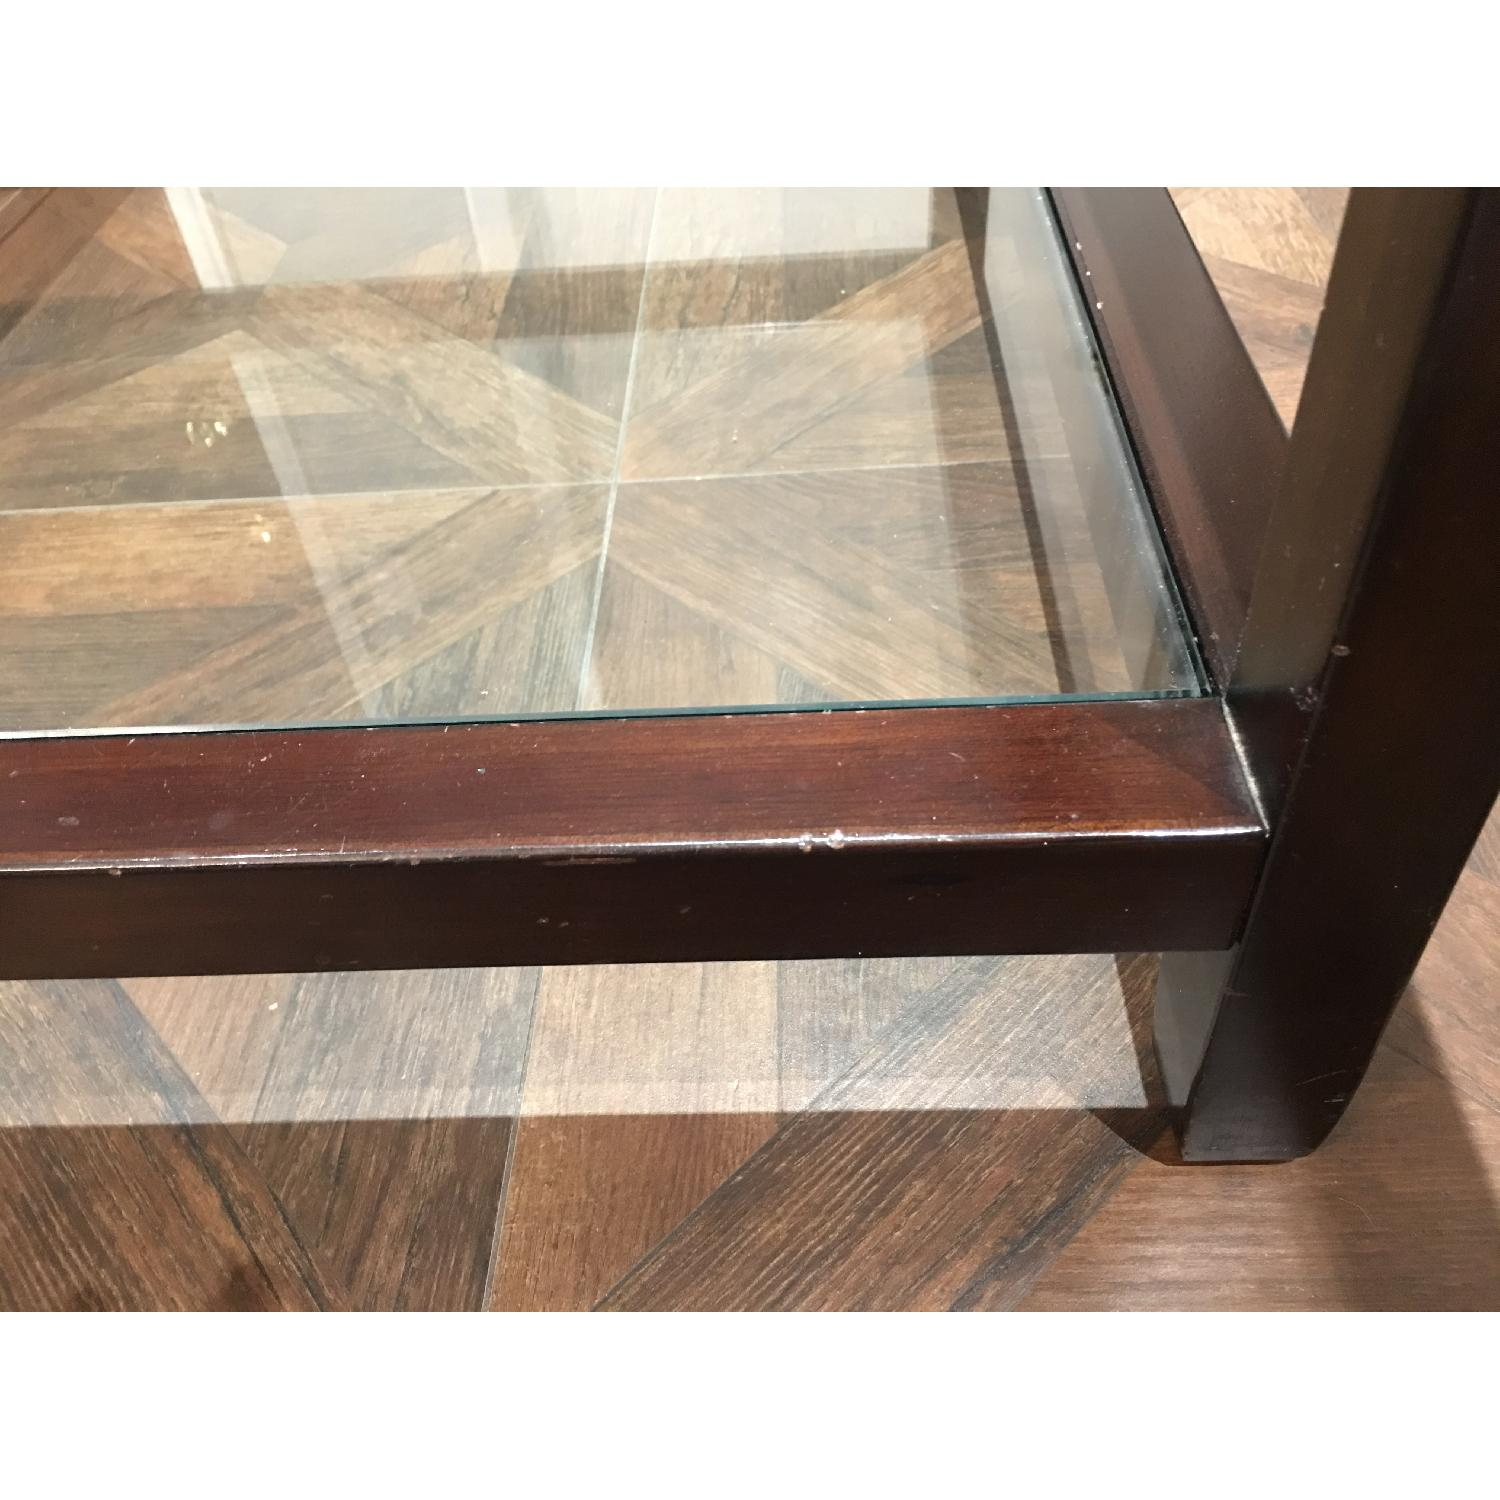 Pottery Barn Glass & Wood Coffee Table - image-12